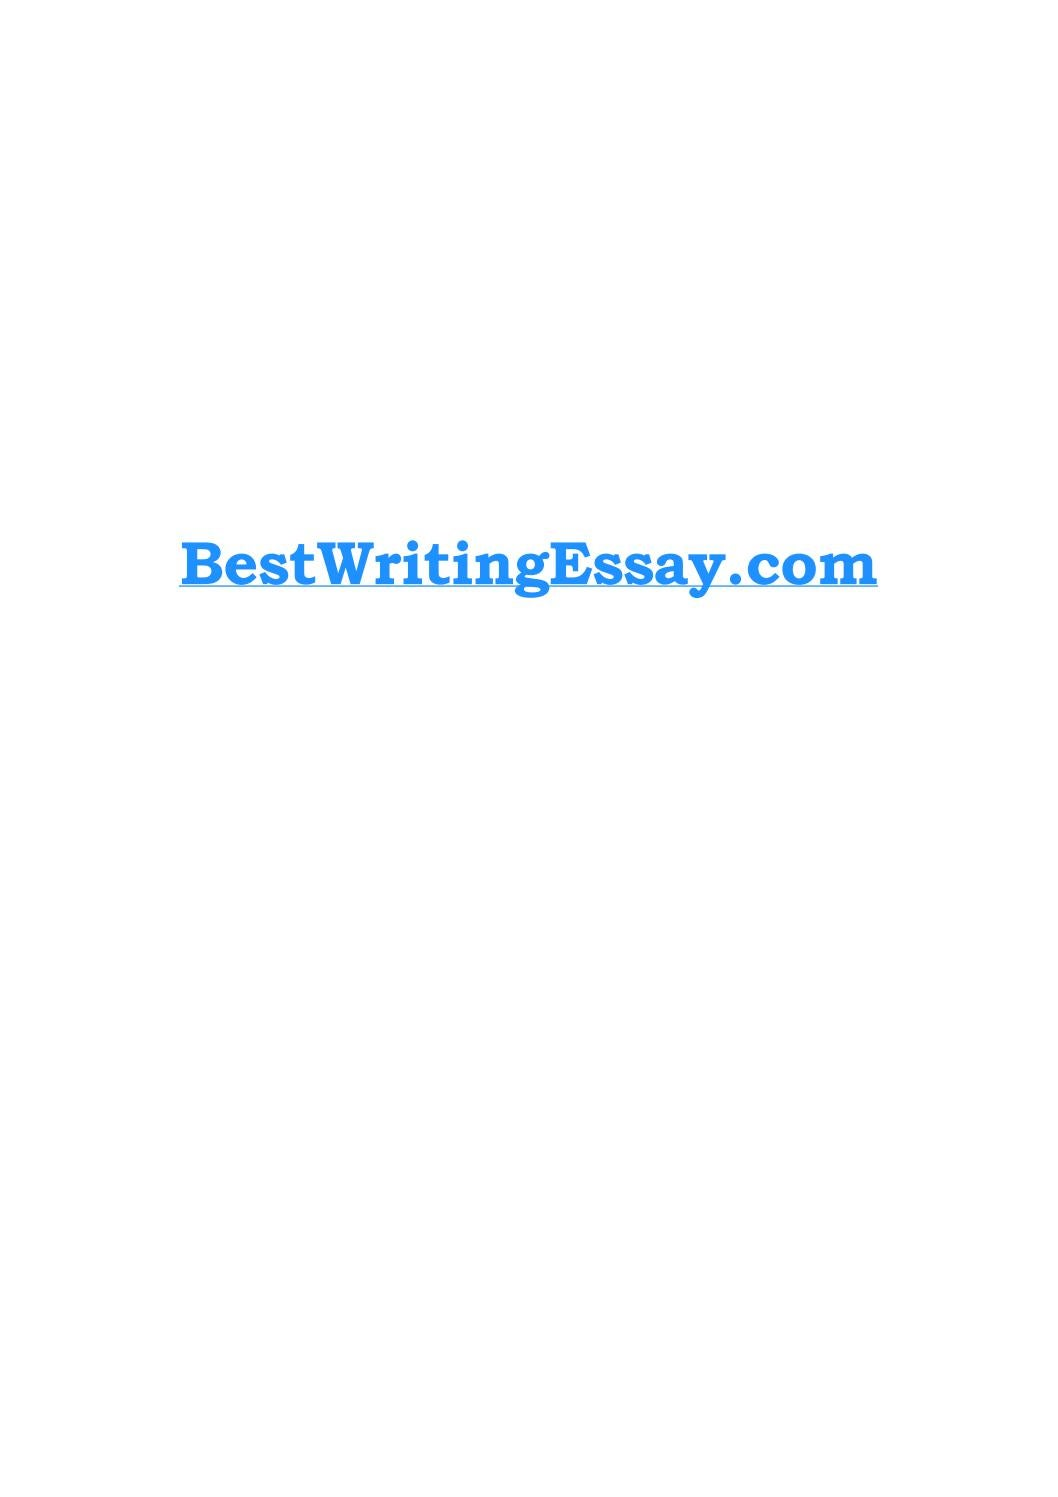 Best term paper writing services usa